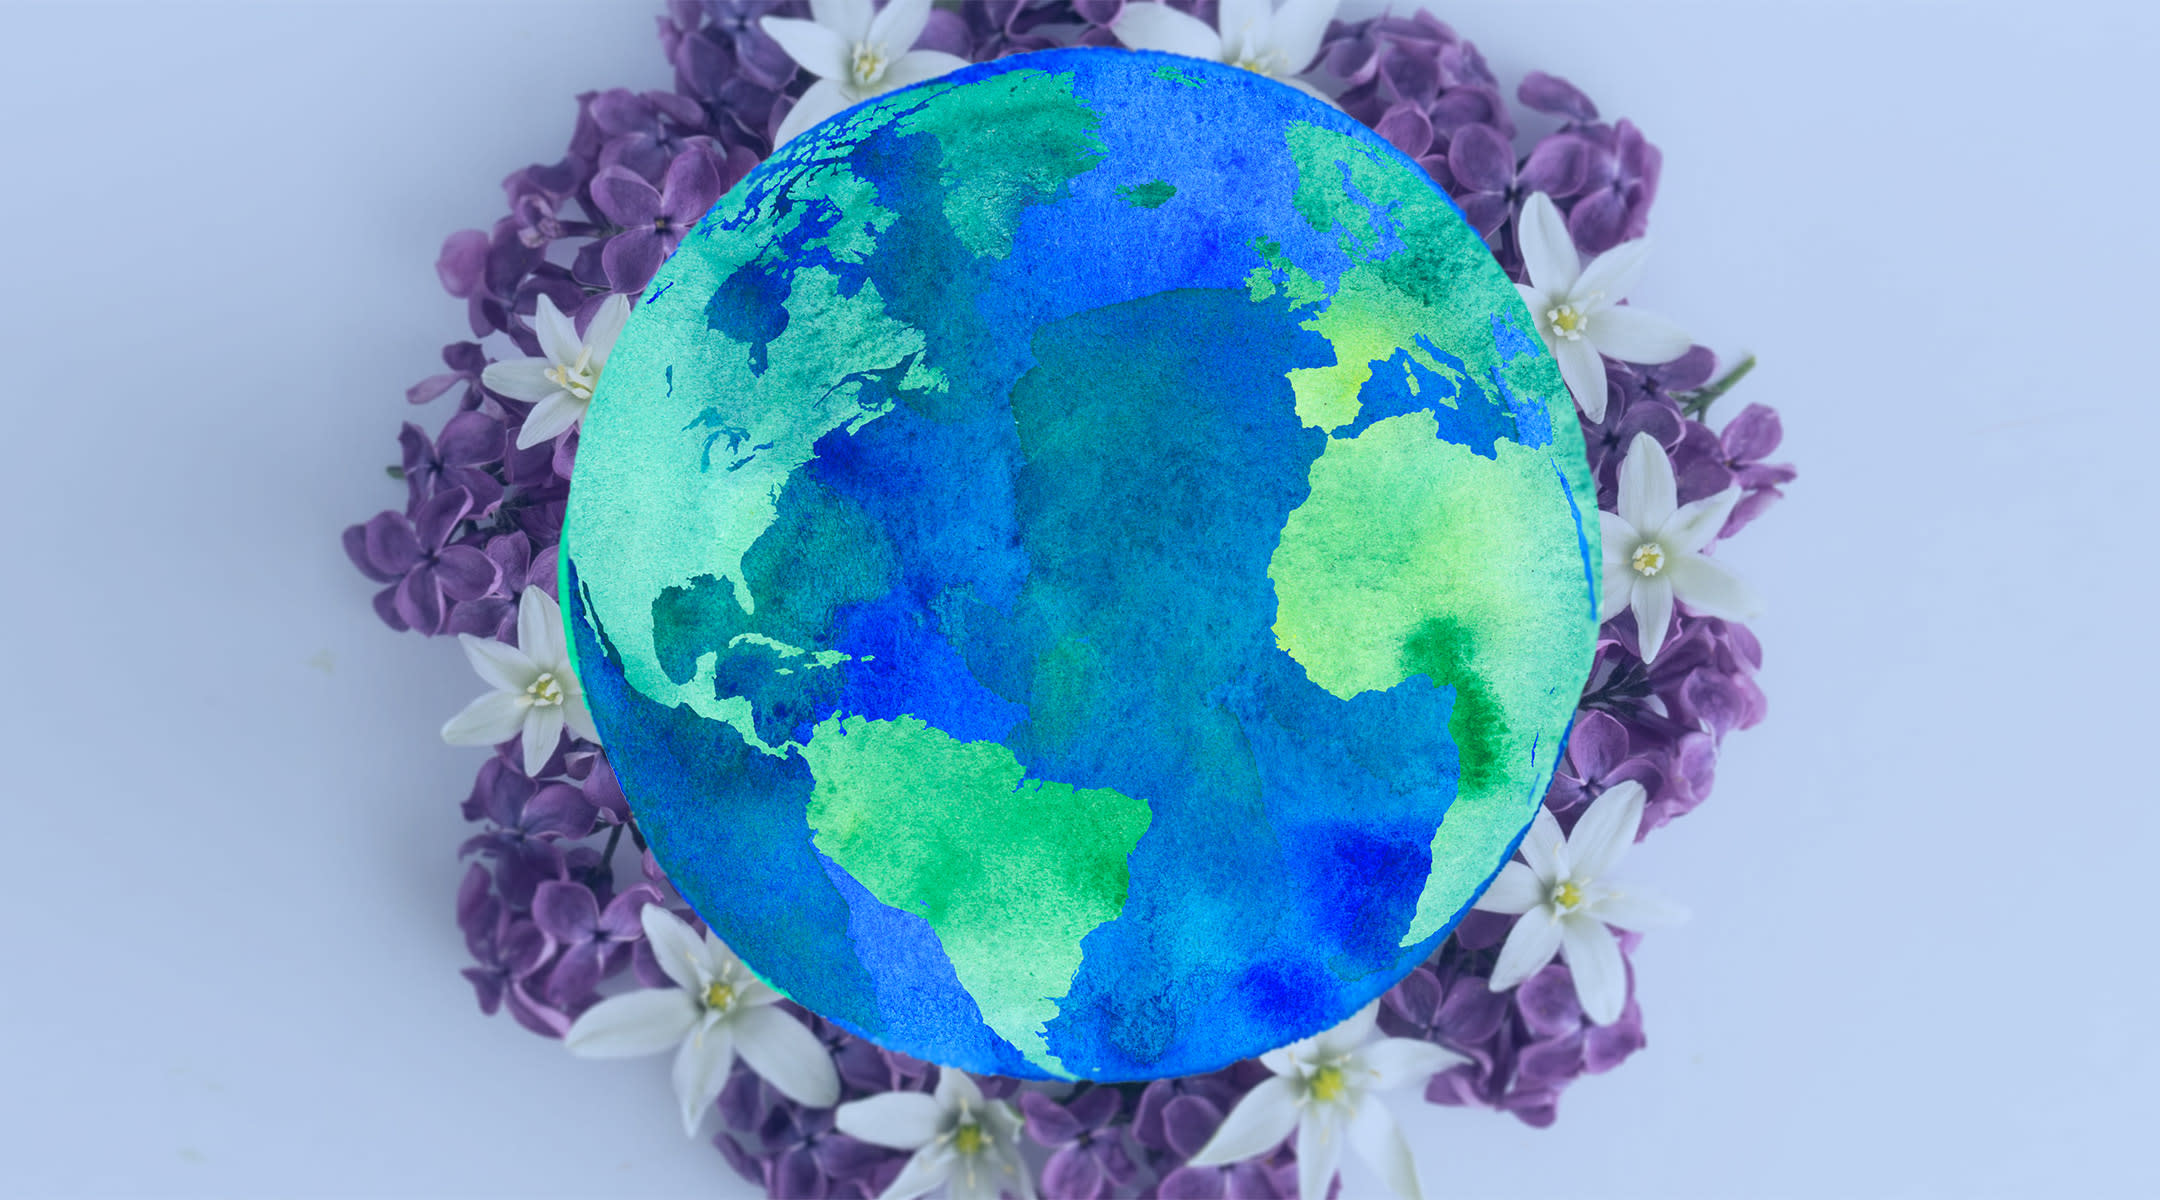 earth and flower collage